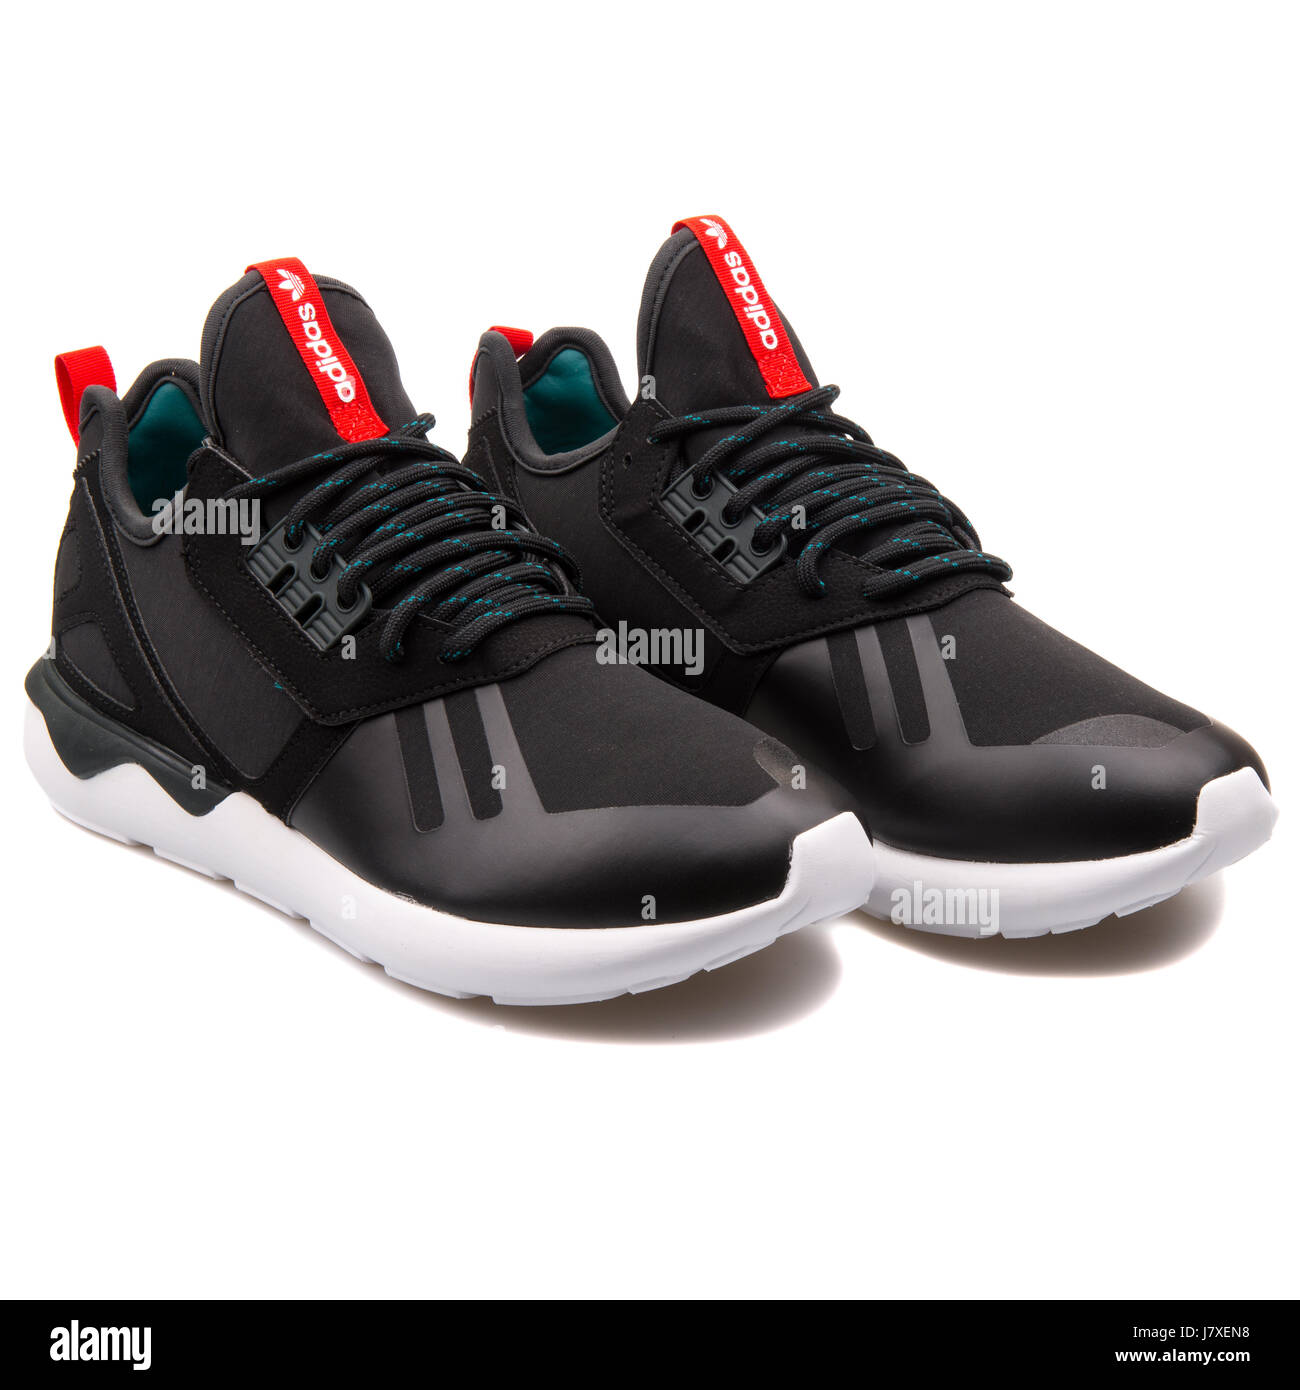 Adidas Tubular Runner Weave Black with Red Running Sneakers - S82651 -  Stock Image 82c3d0849